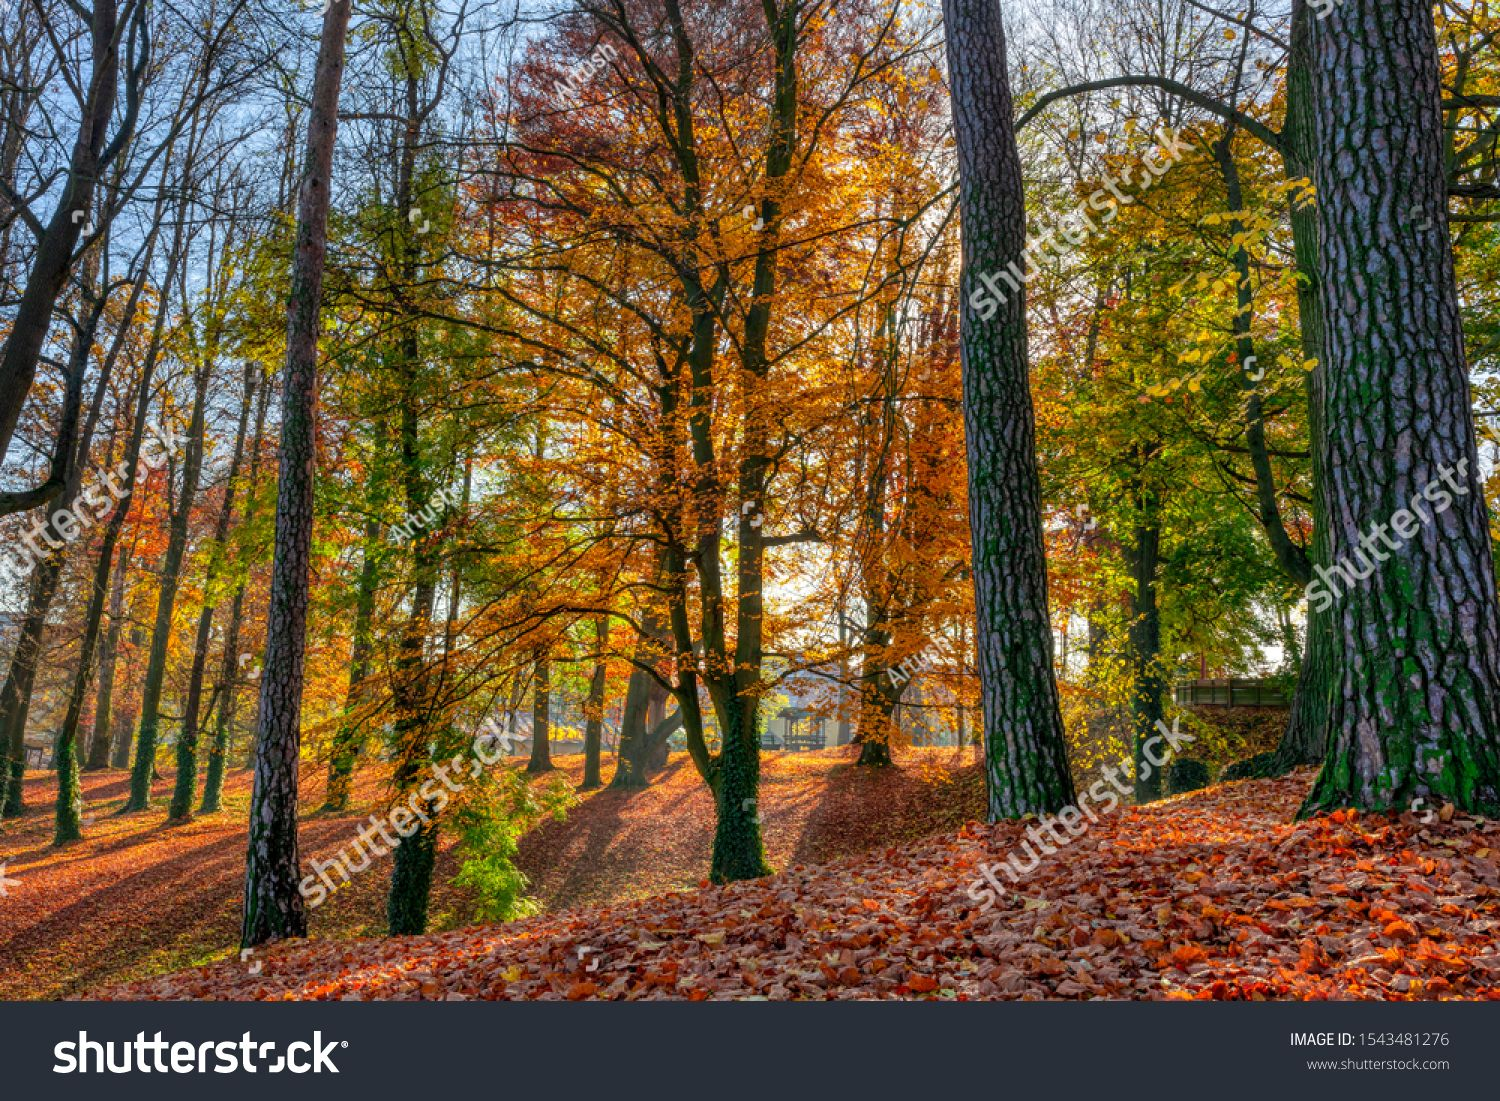 Romantic fall colored park with trees and morning sunlight. Autumn season natural background. Fall concept in park. Vivid colorful natural scene. Europe #Ad , #spon, #morning#trees#Autumn#sunlight